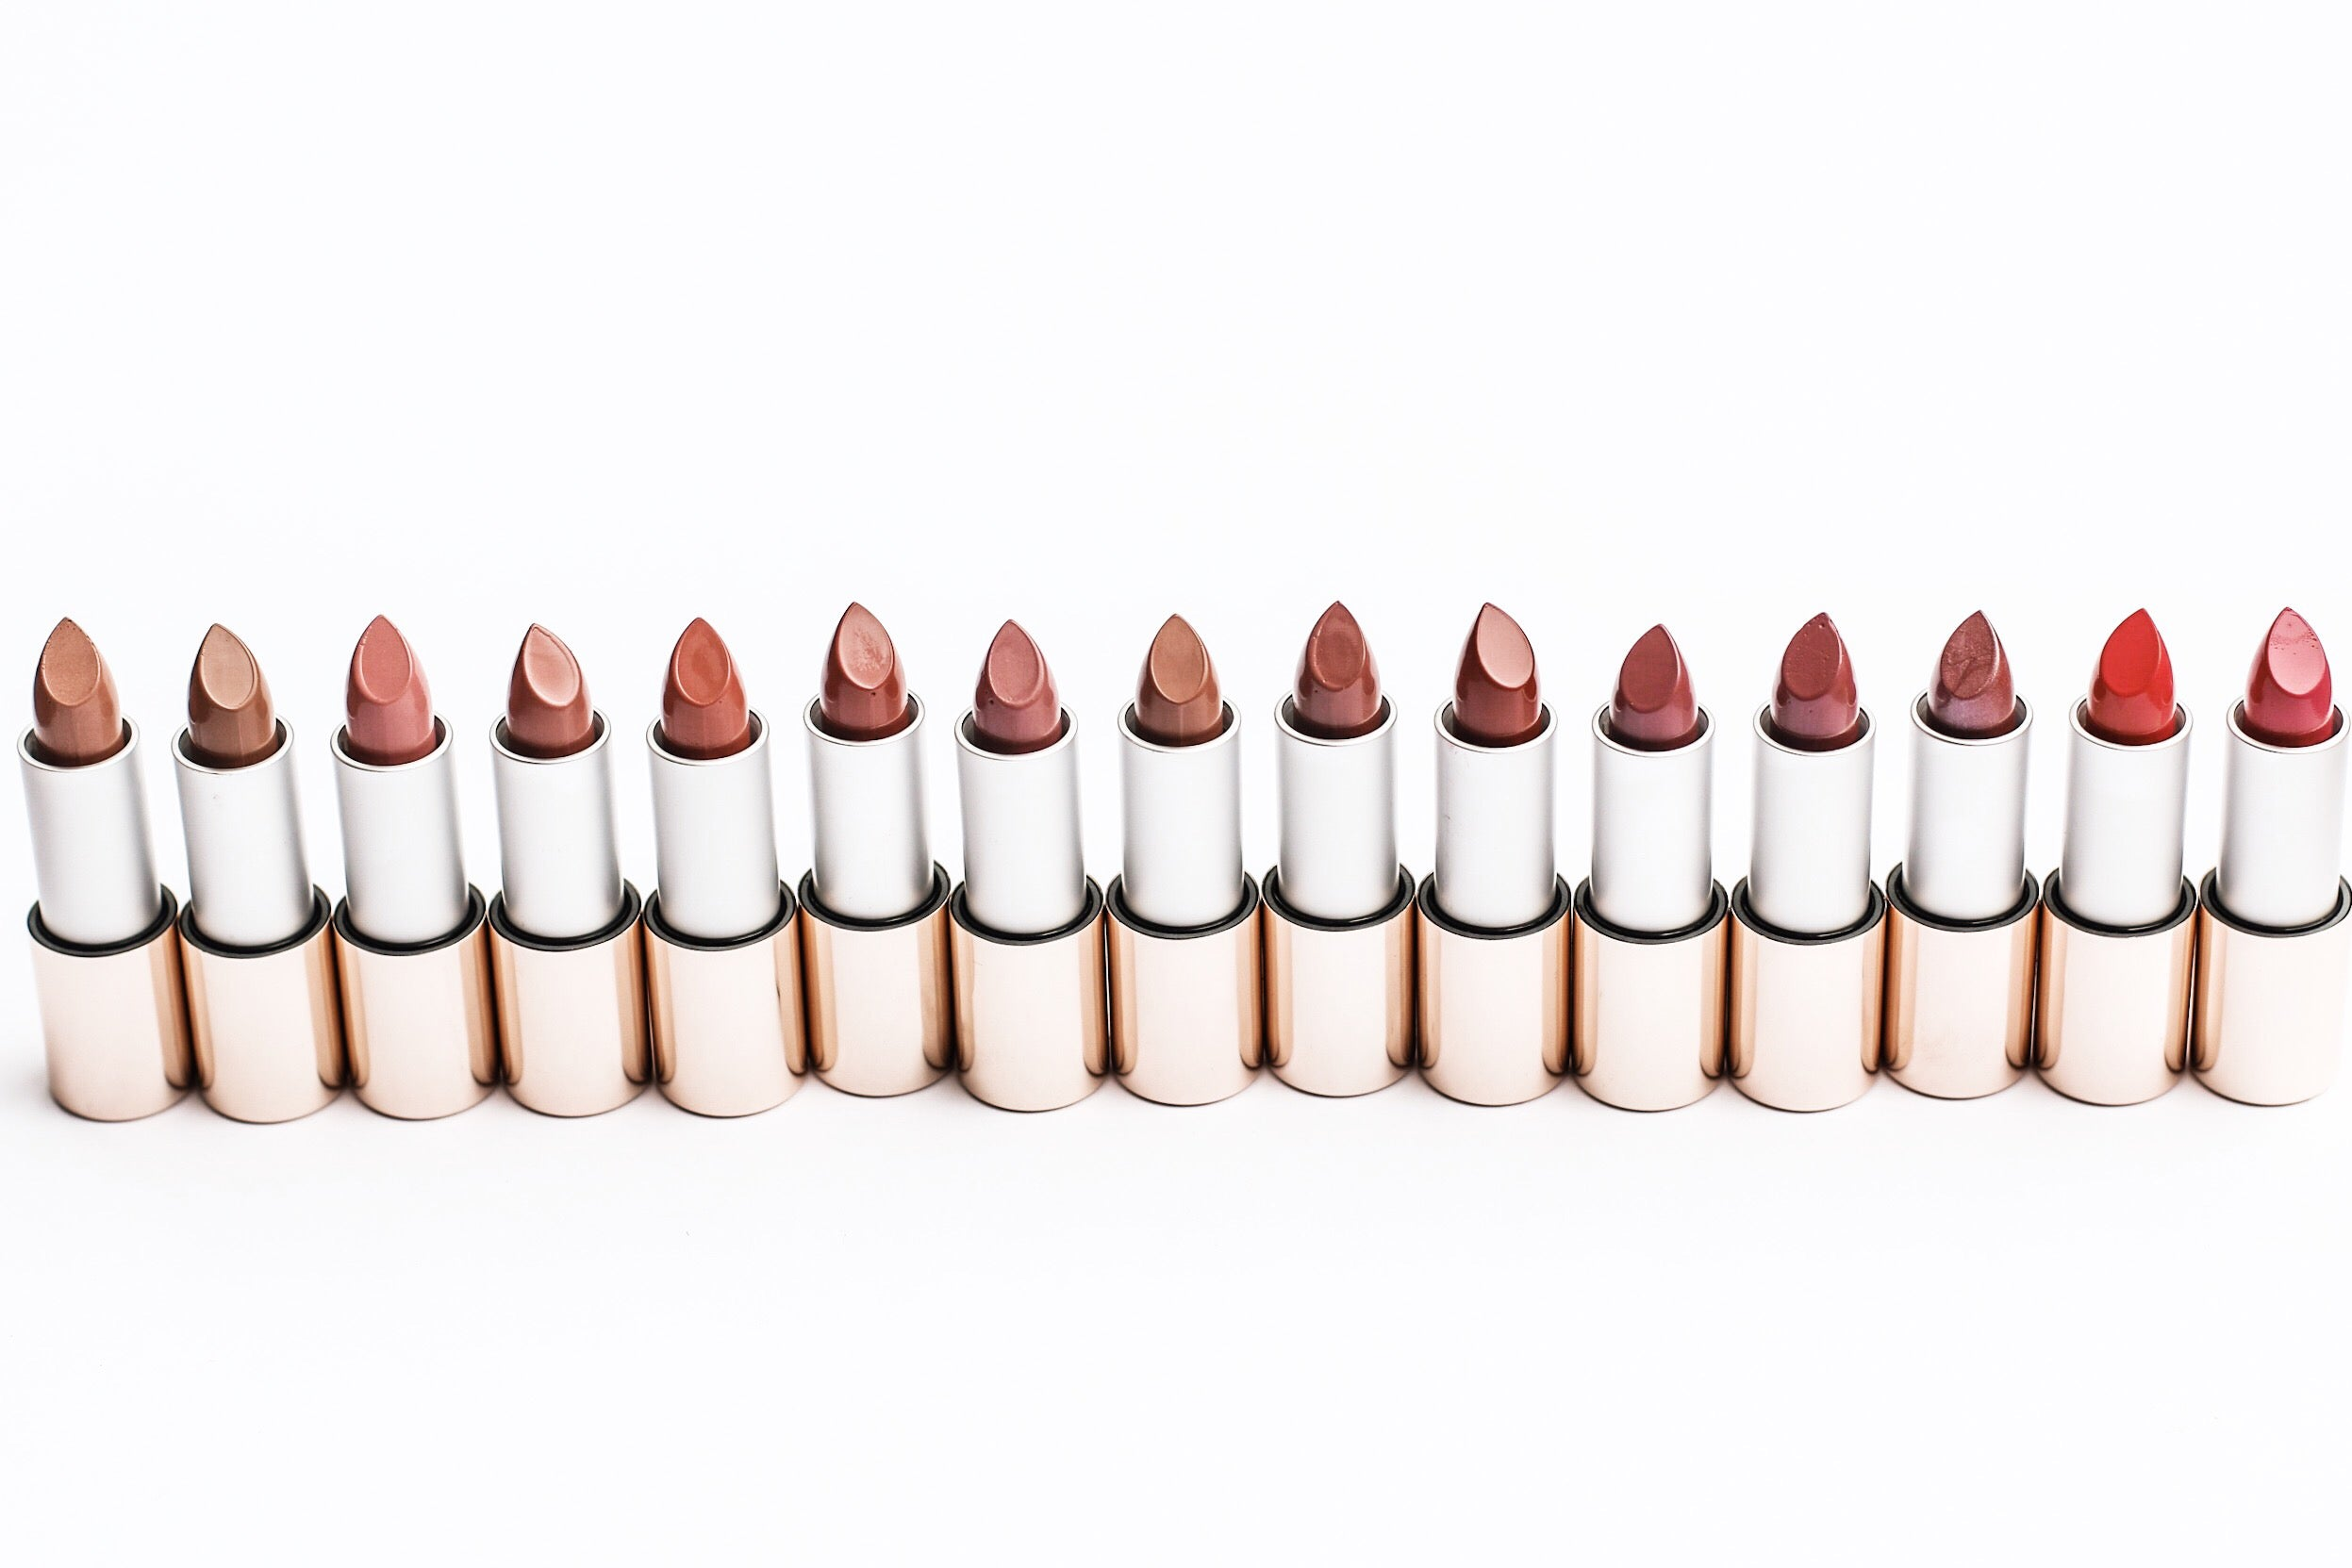 Triple Luxe Lipsticks lined up